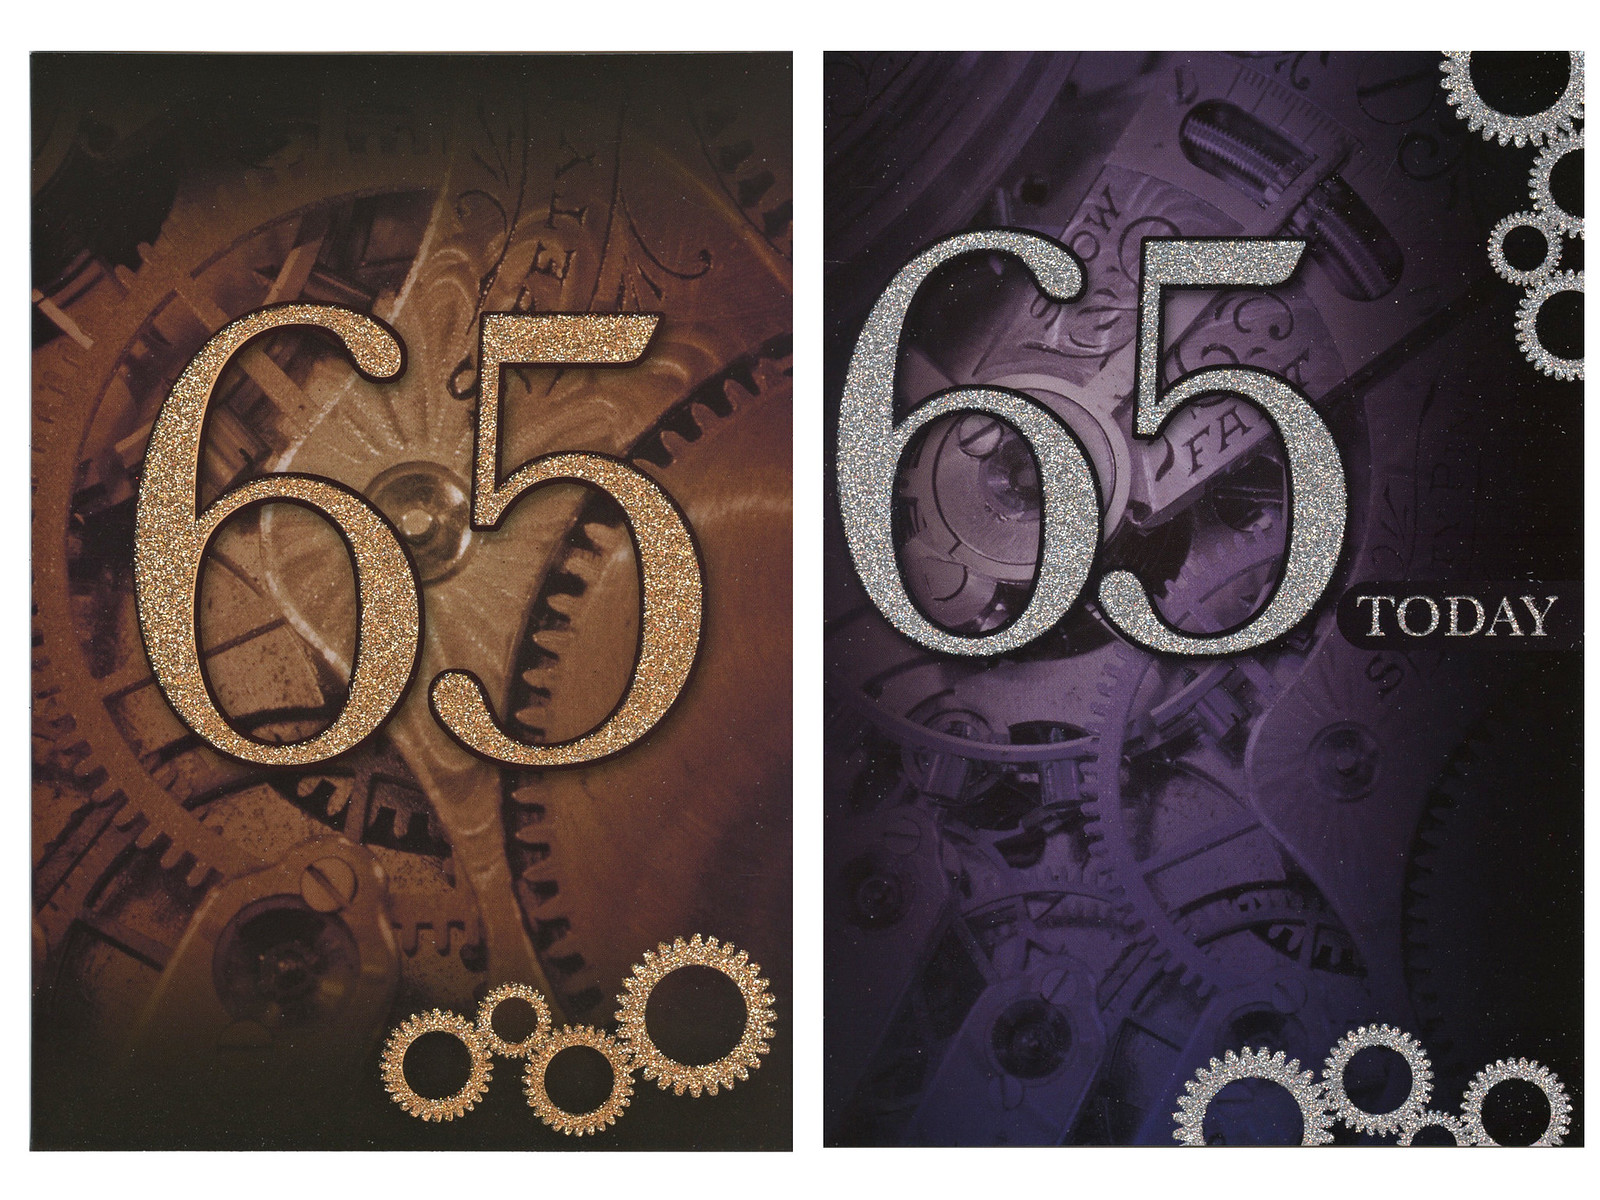 Details About MALE 65 TODAY 65TH BIRTHDAY CARD 1ST PP GREETING